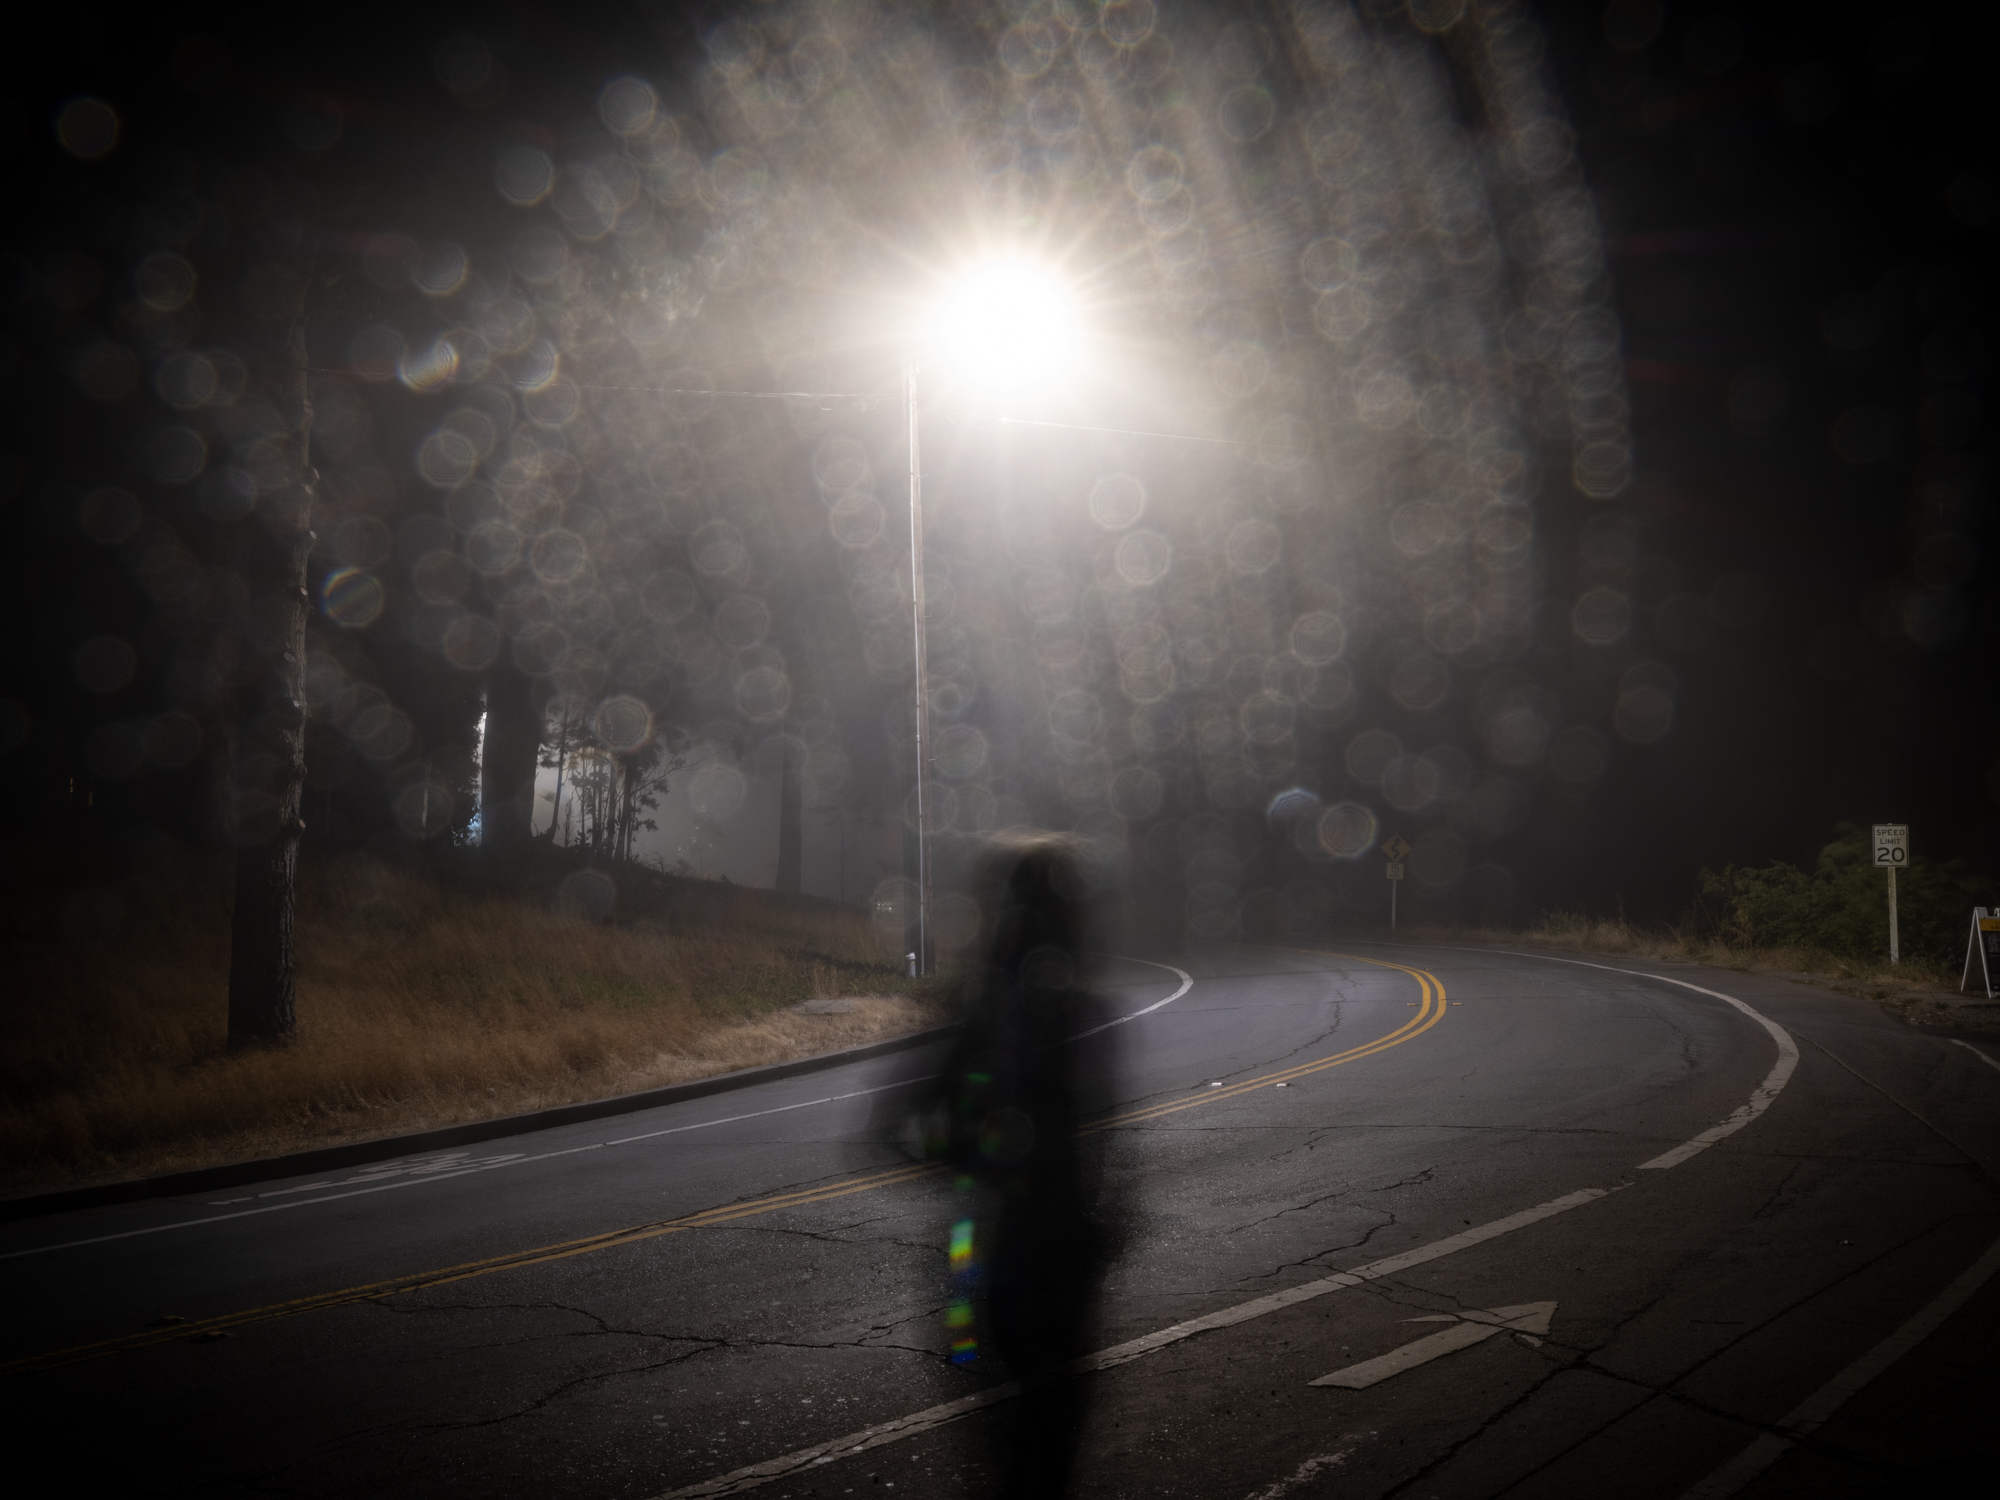 Person walking on roadway at night.